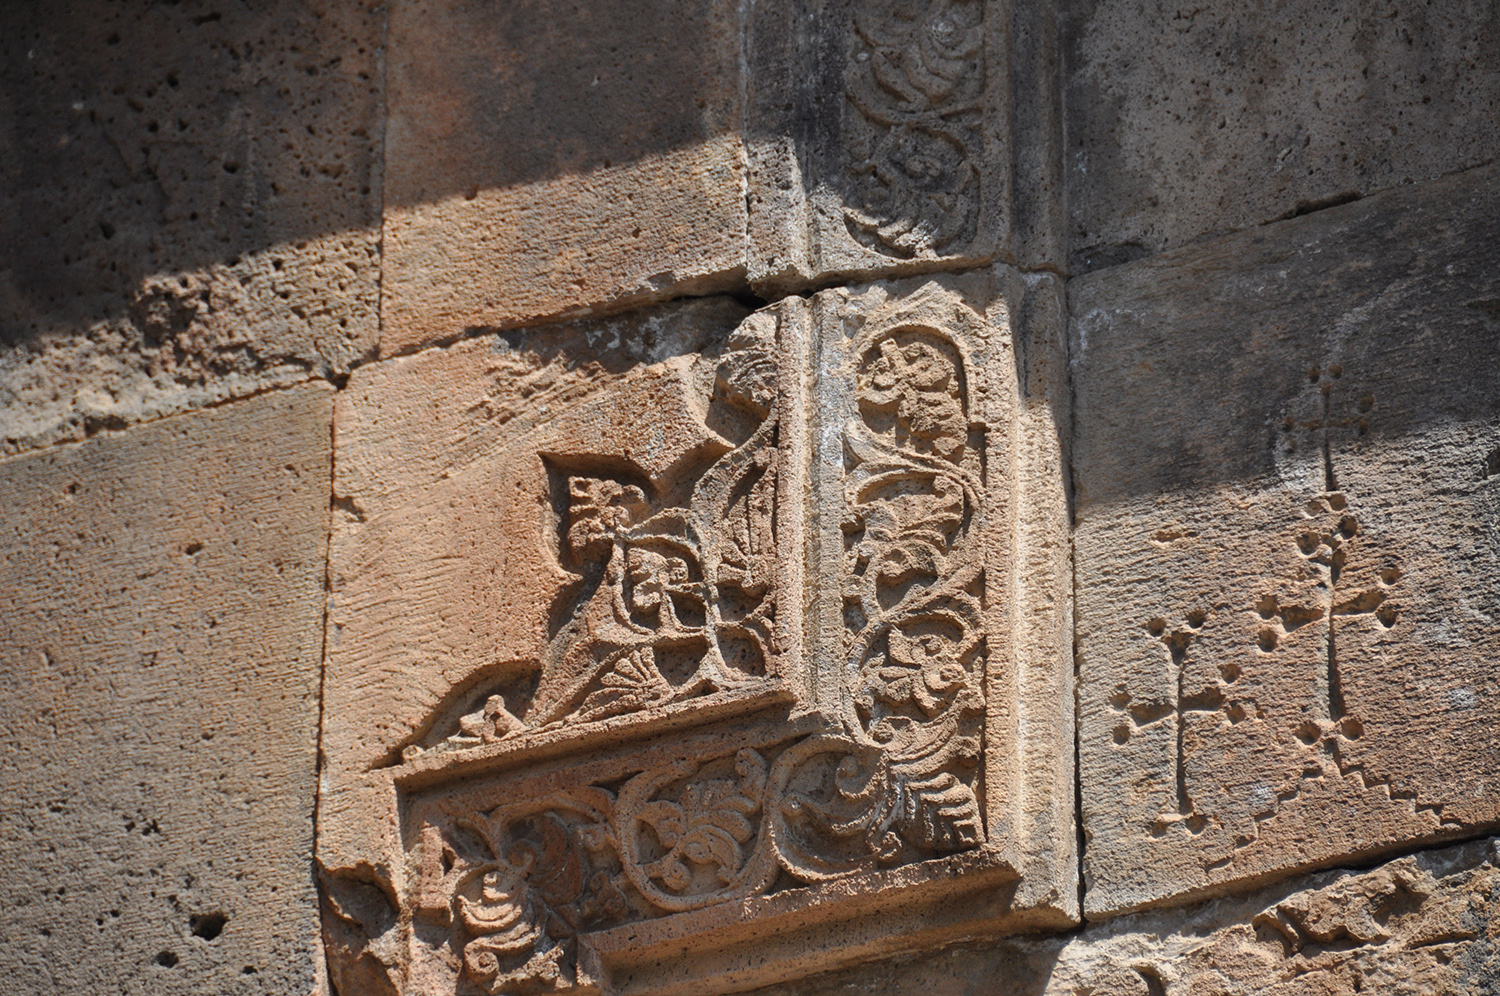 Wall carvings in Geghard monastery